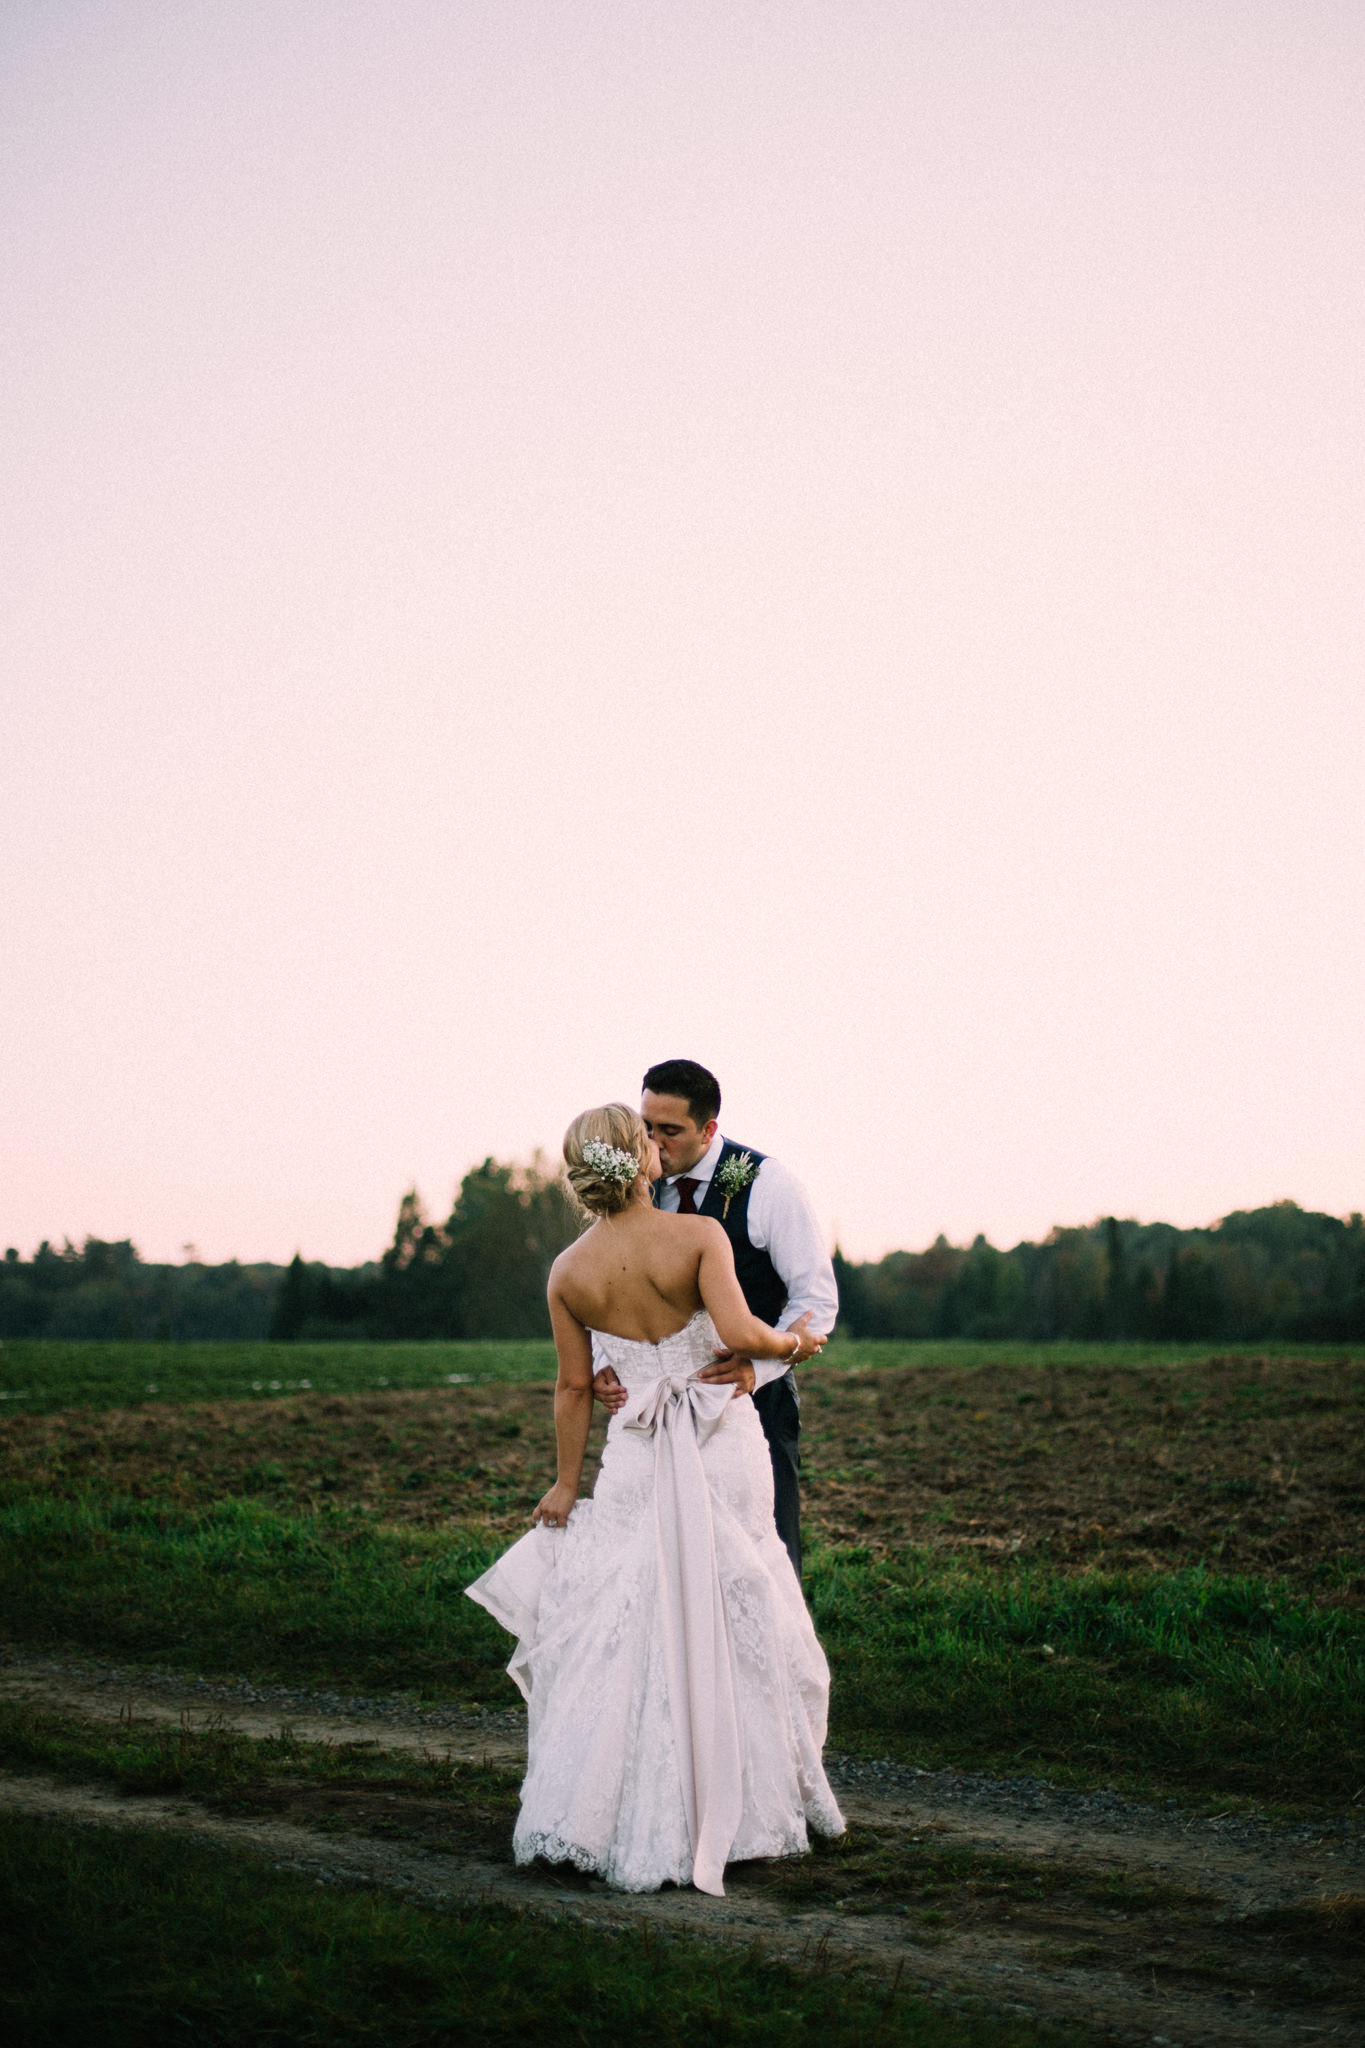 bride and groom kissing on a farm field